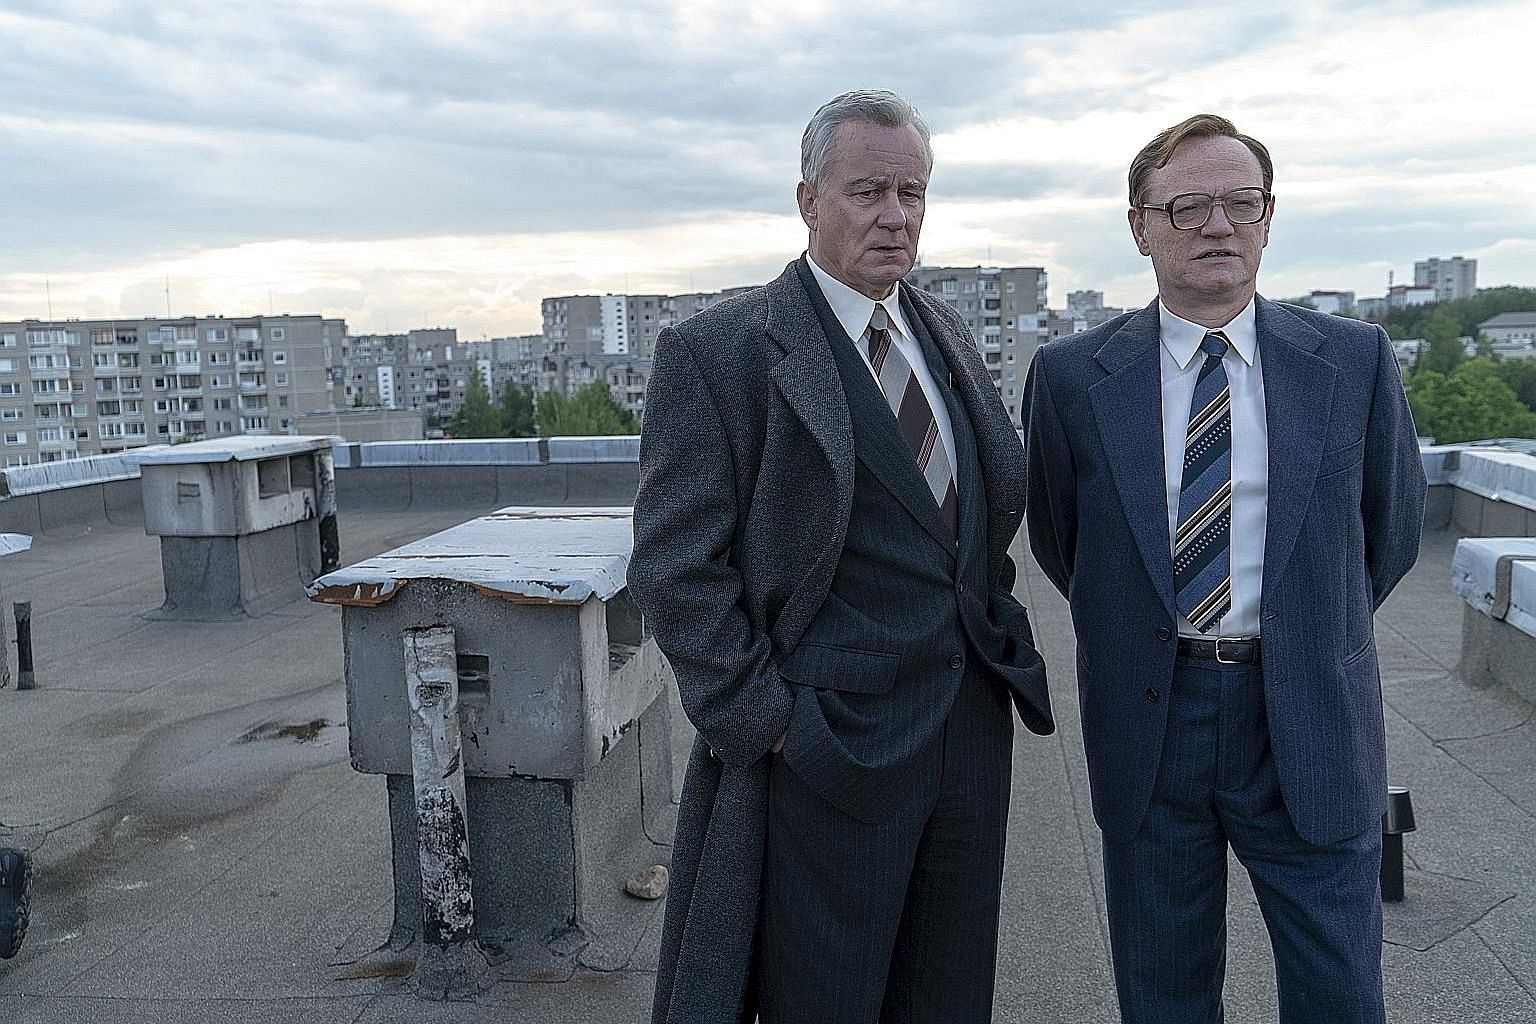 Chernobyl, which examines the 1986 nuclear plant meltdown in Ukraine, stars Stellan Skarsgard (far left) and Jared Harris (left). L.A.'s Finest is a police drama starring Jessica Alba (above).